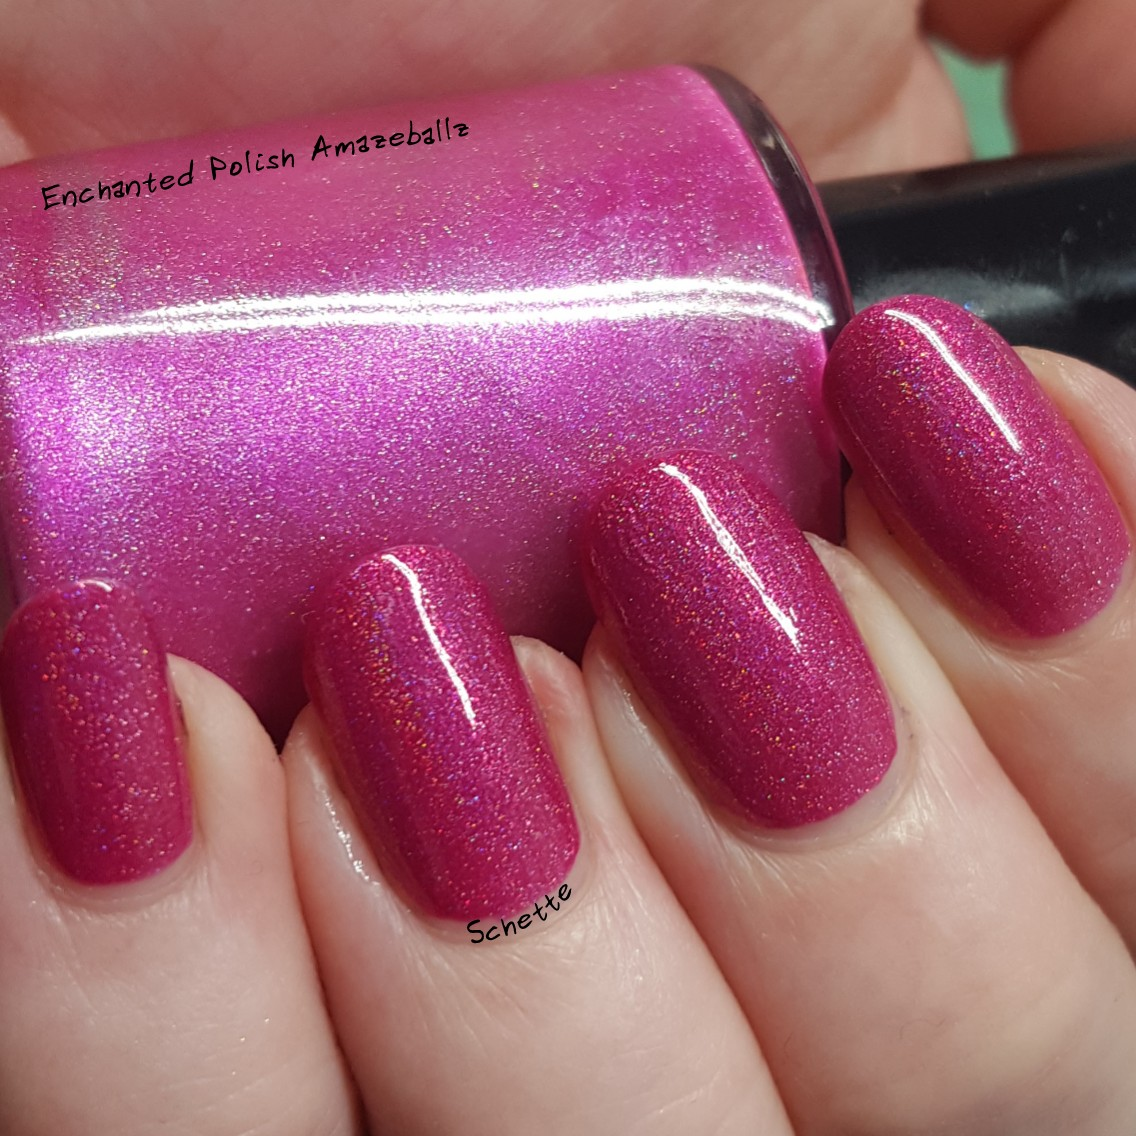 Enchanted Polish - Amaze-Ballz